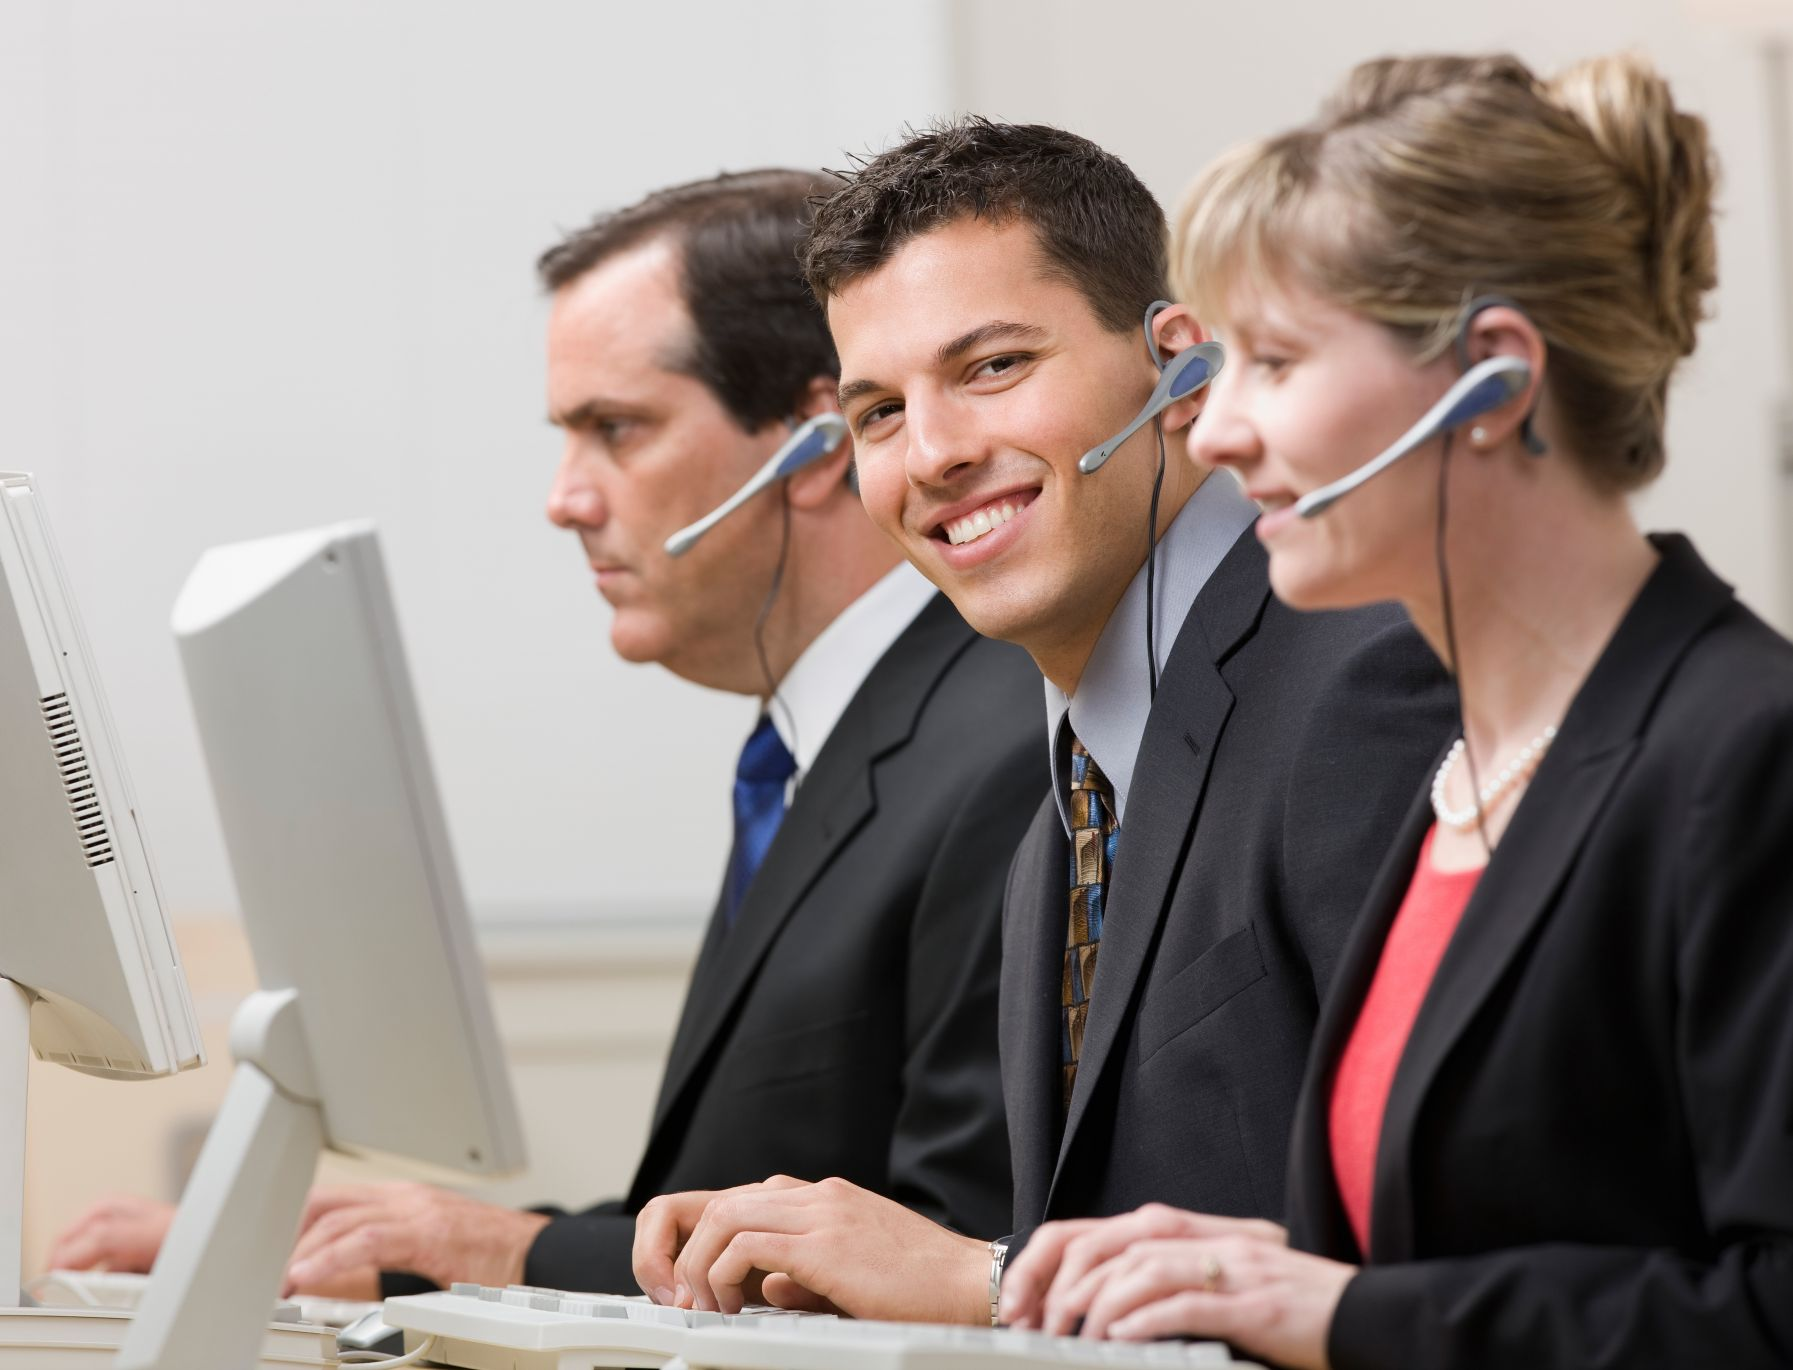 Top 5 Things To Count Upon When Choosing A Call Center Service Provider